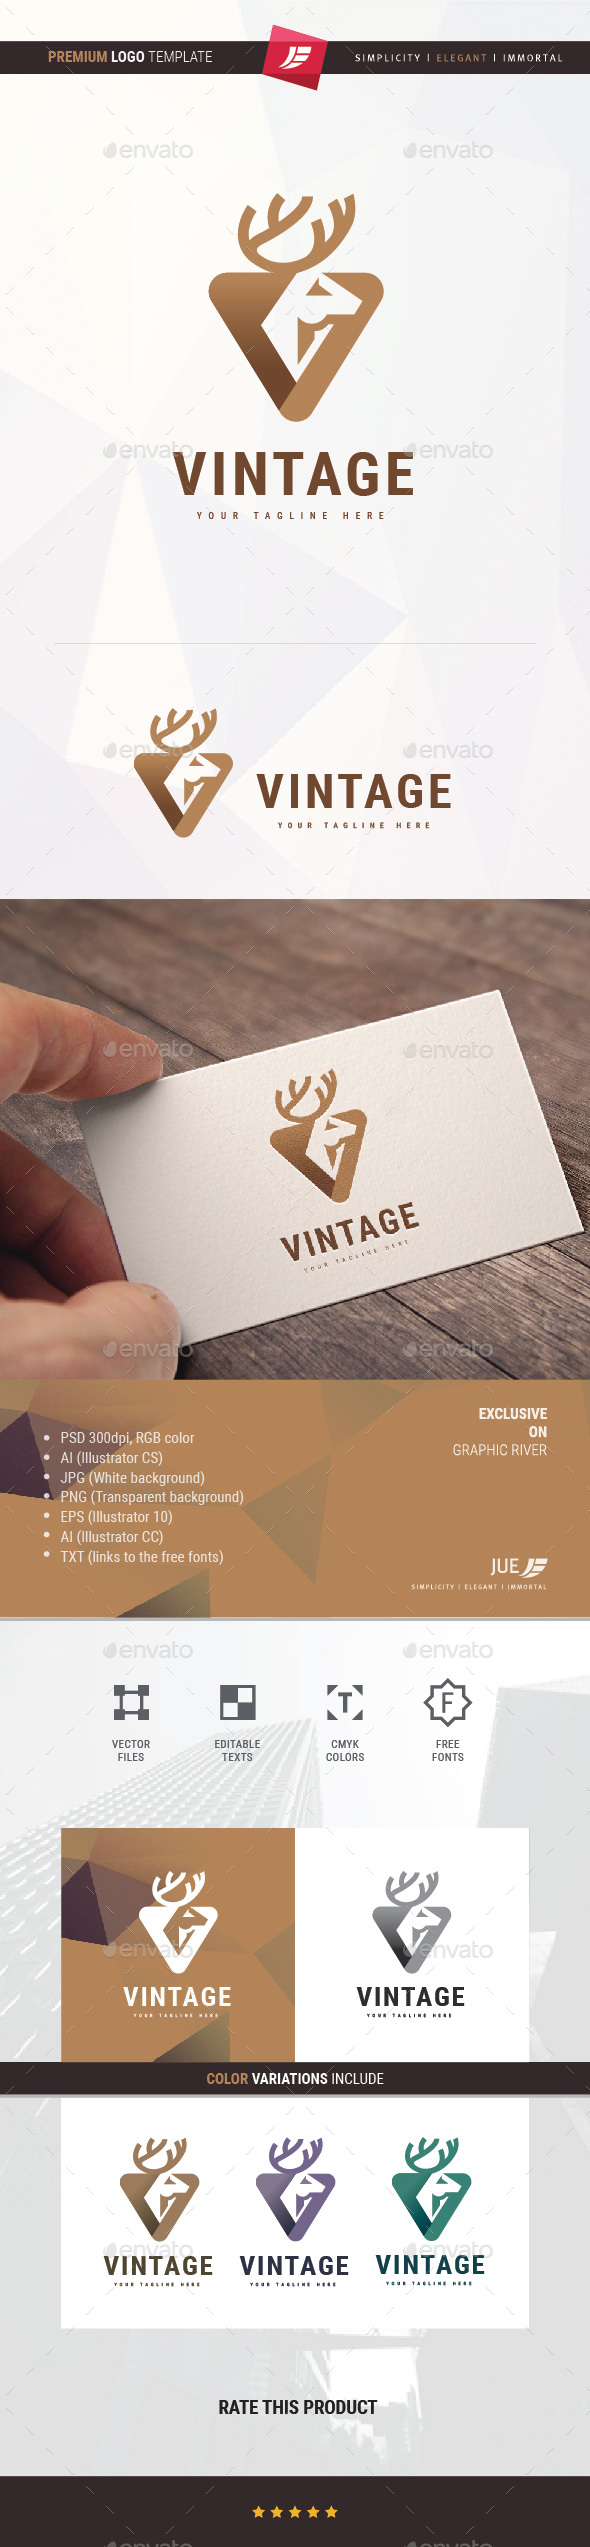 Deer Vintage Logo - Animals Logo Templates